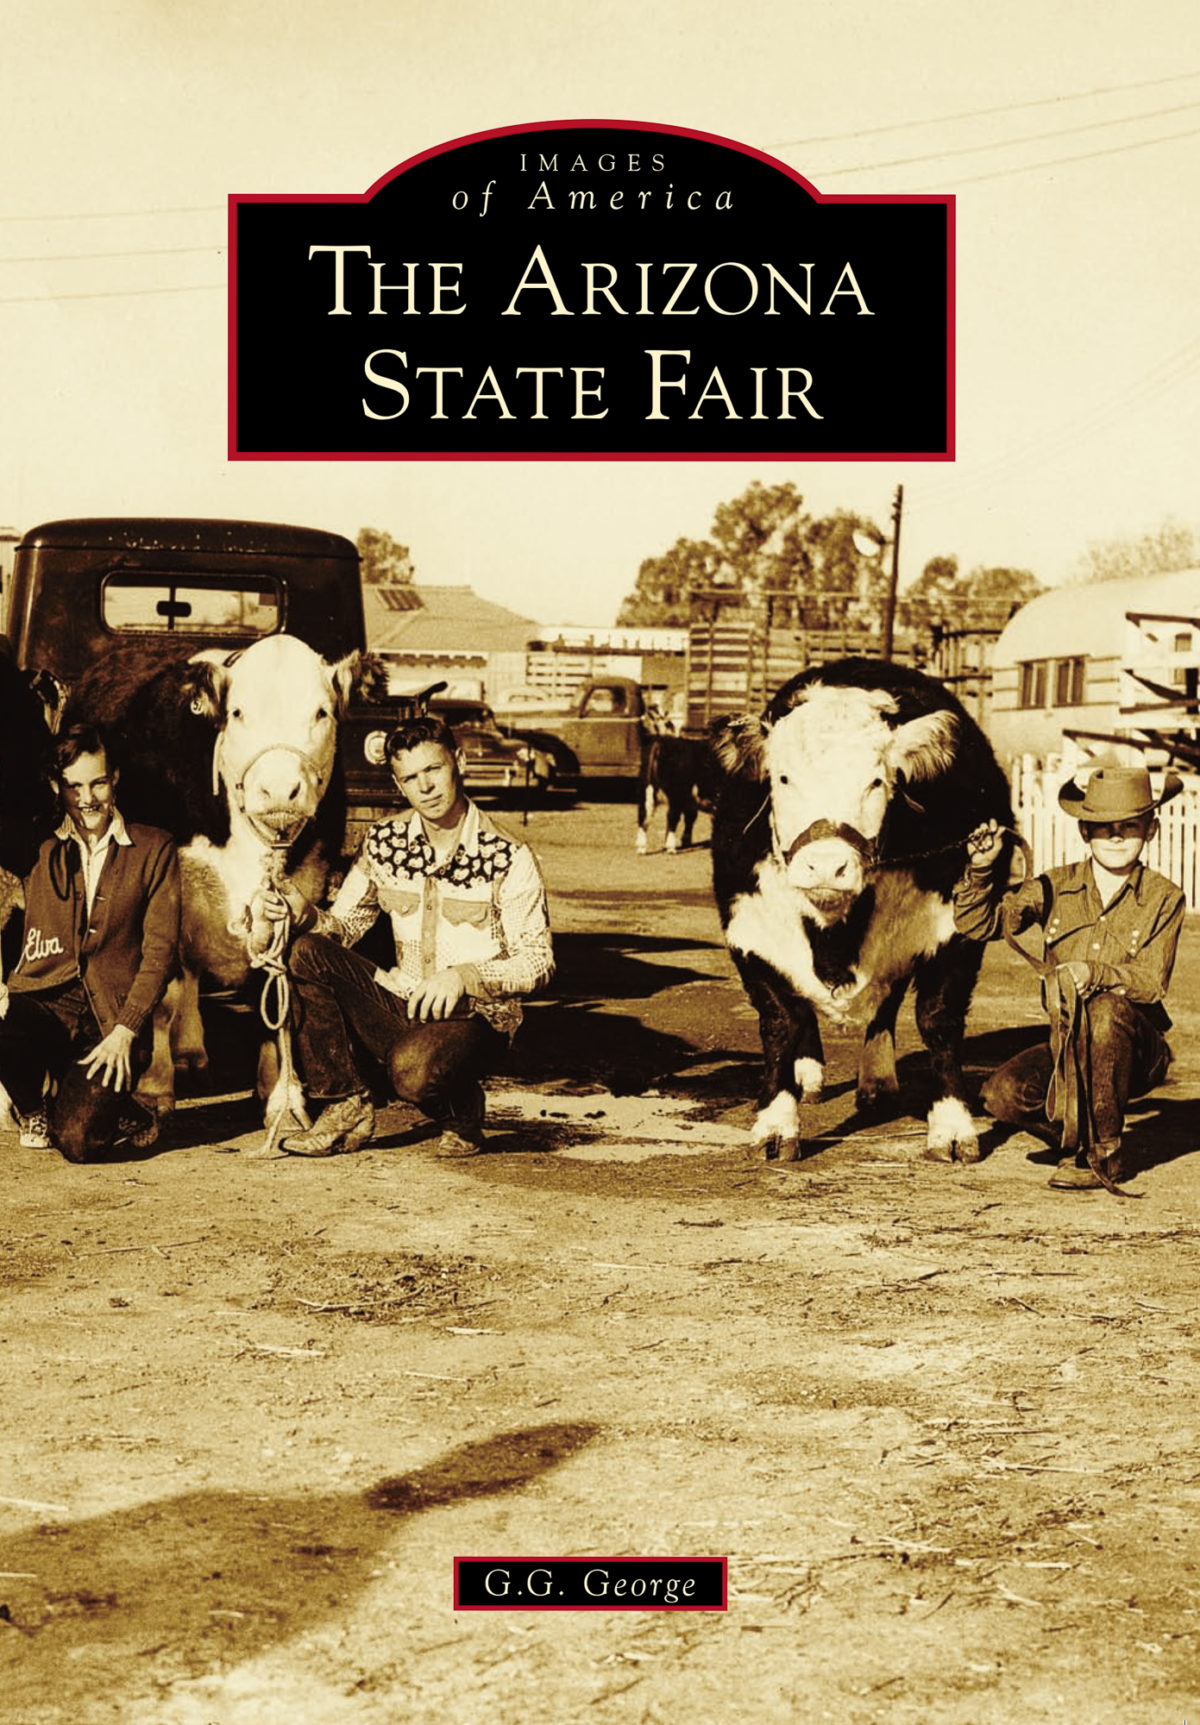 The Arizona State Fair